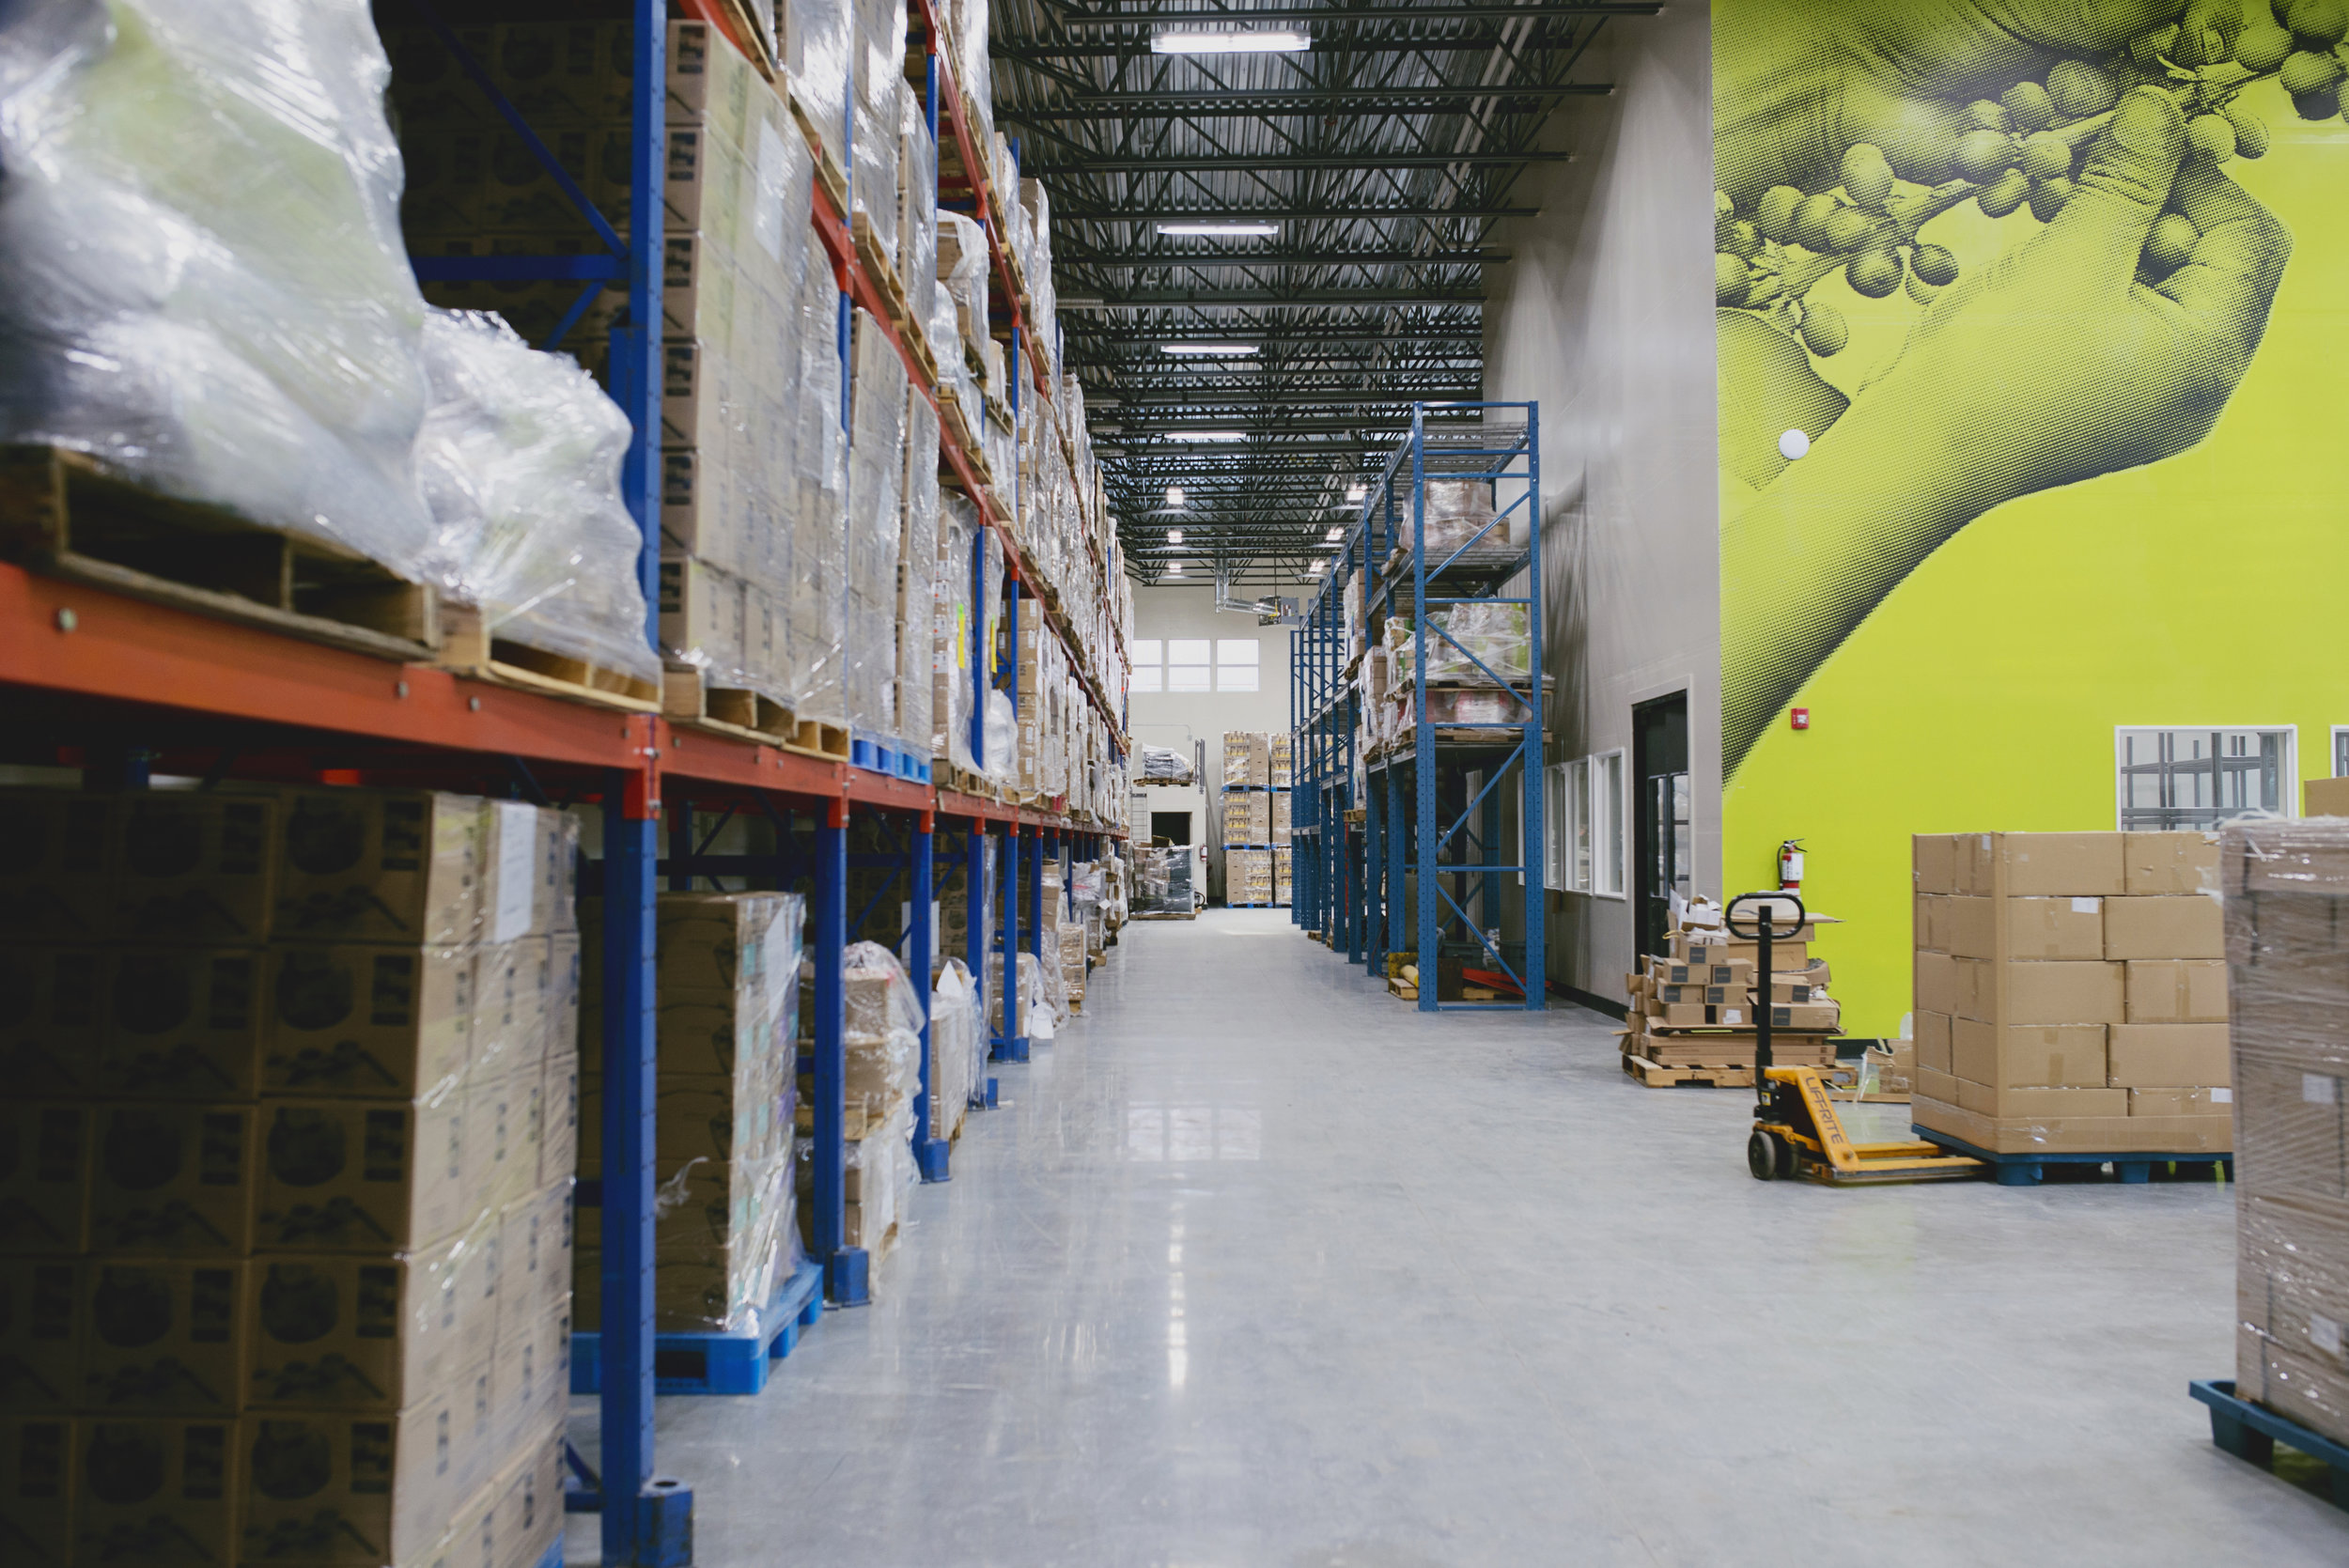 A view down our warehouse. The green mural wall is one of our favourite parts of the building!